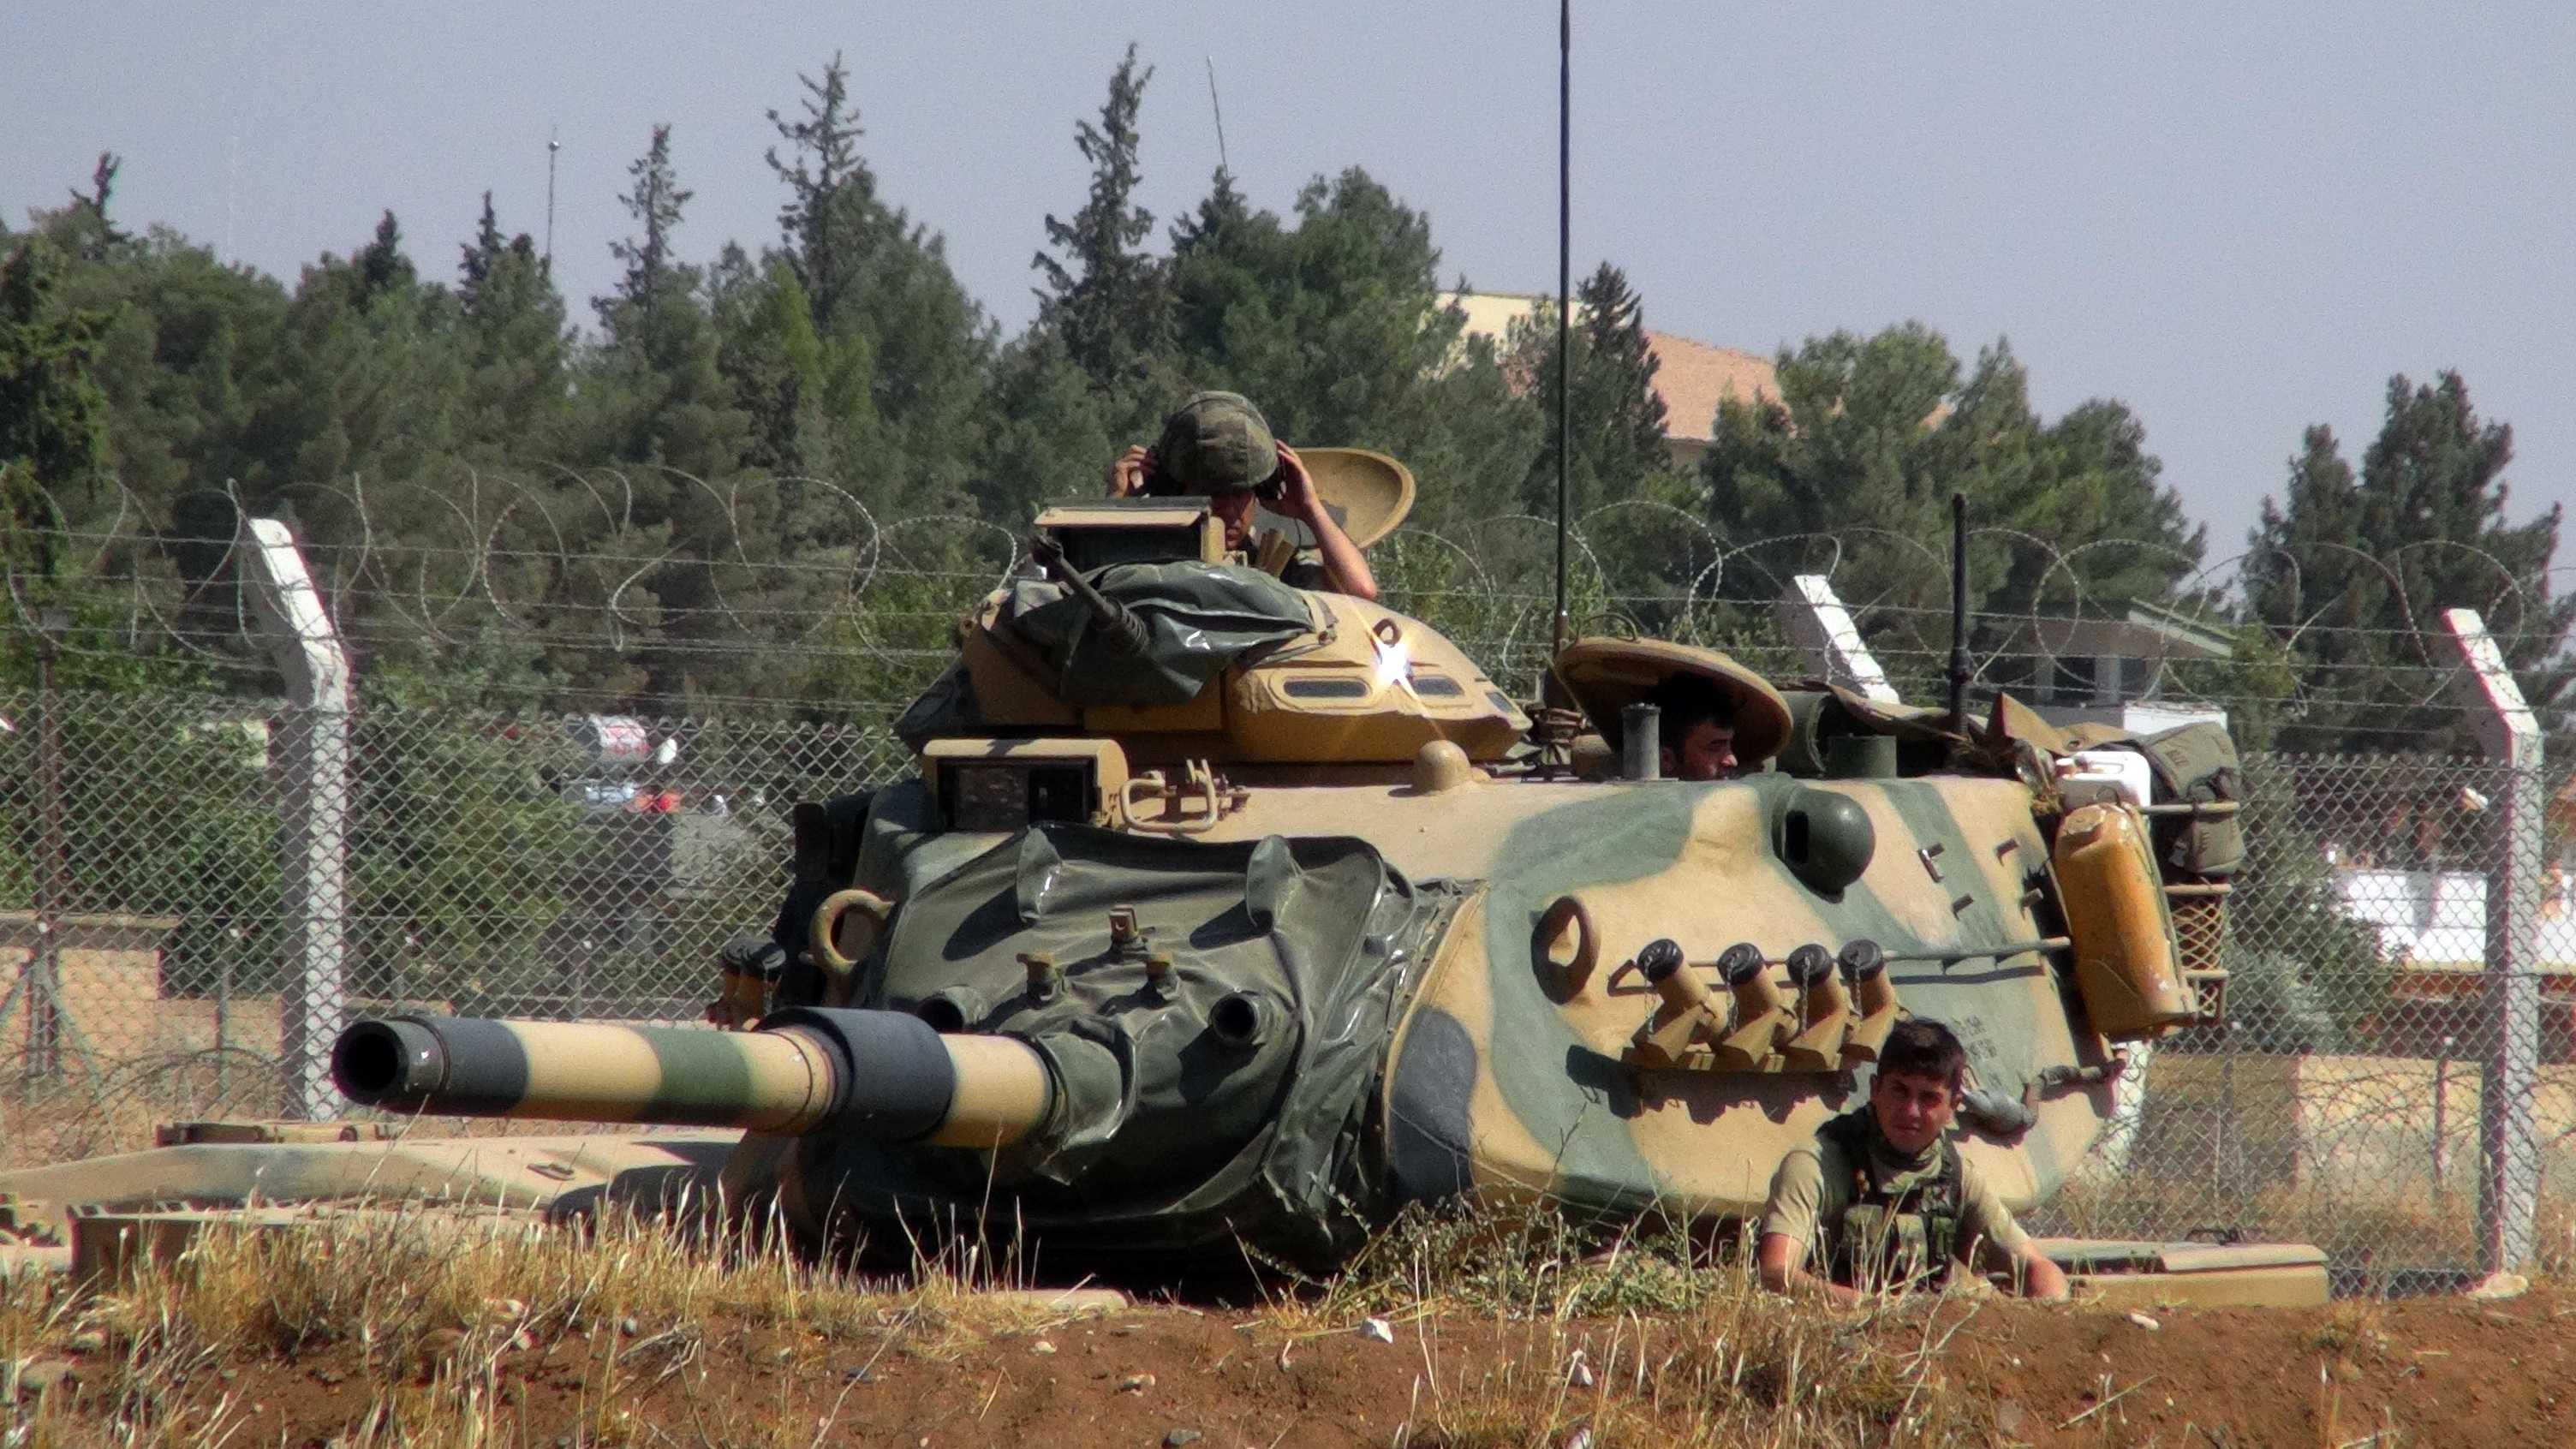 "A Turkish army tank stationed near the Syrian border, in Suruc, Turkey, Saturday, Sept. 3, 2016. Turkey's state-run news agency says Turkish tanks have entered Syria's Cobanbey district northeast of Aleppo in a ""new phase"" of the Euphrates Shield operation. Turkish tanks crossed into Syria Saturday to support Syrian rebels against the Islamic State group, according to the Anadolu news agency."